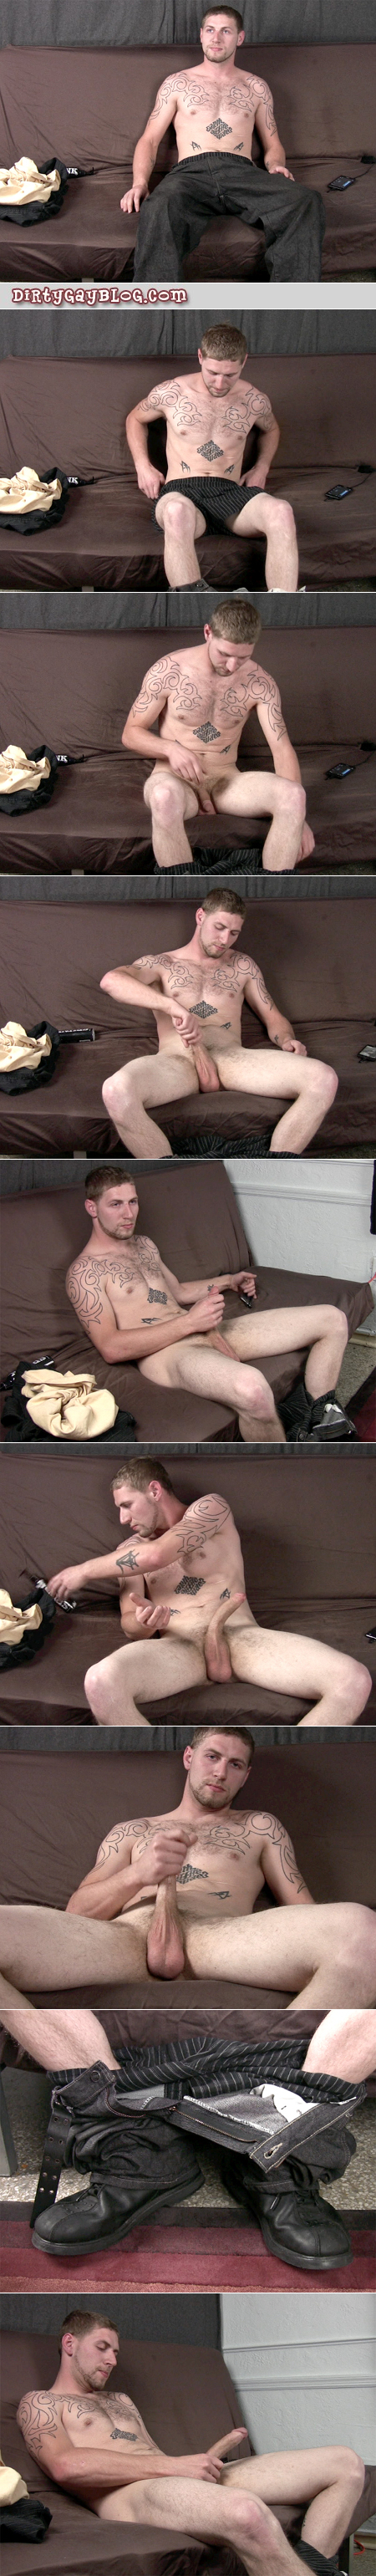 Straight blonde guy with a big dick masturbating on the couch.